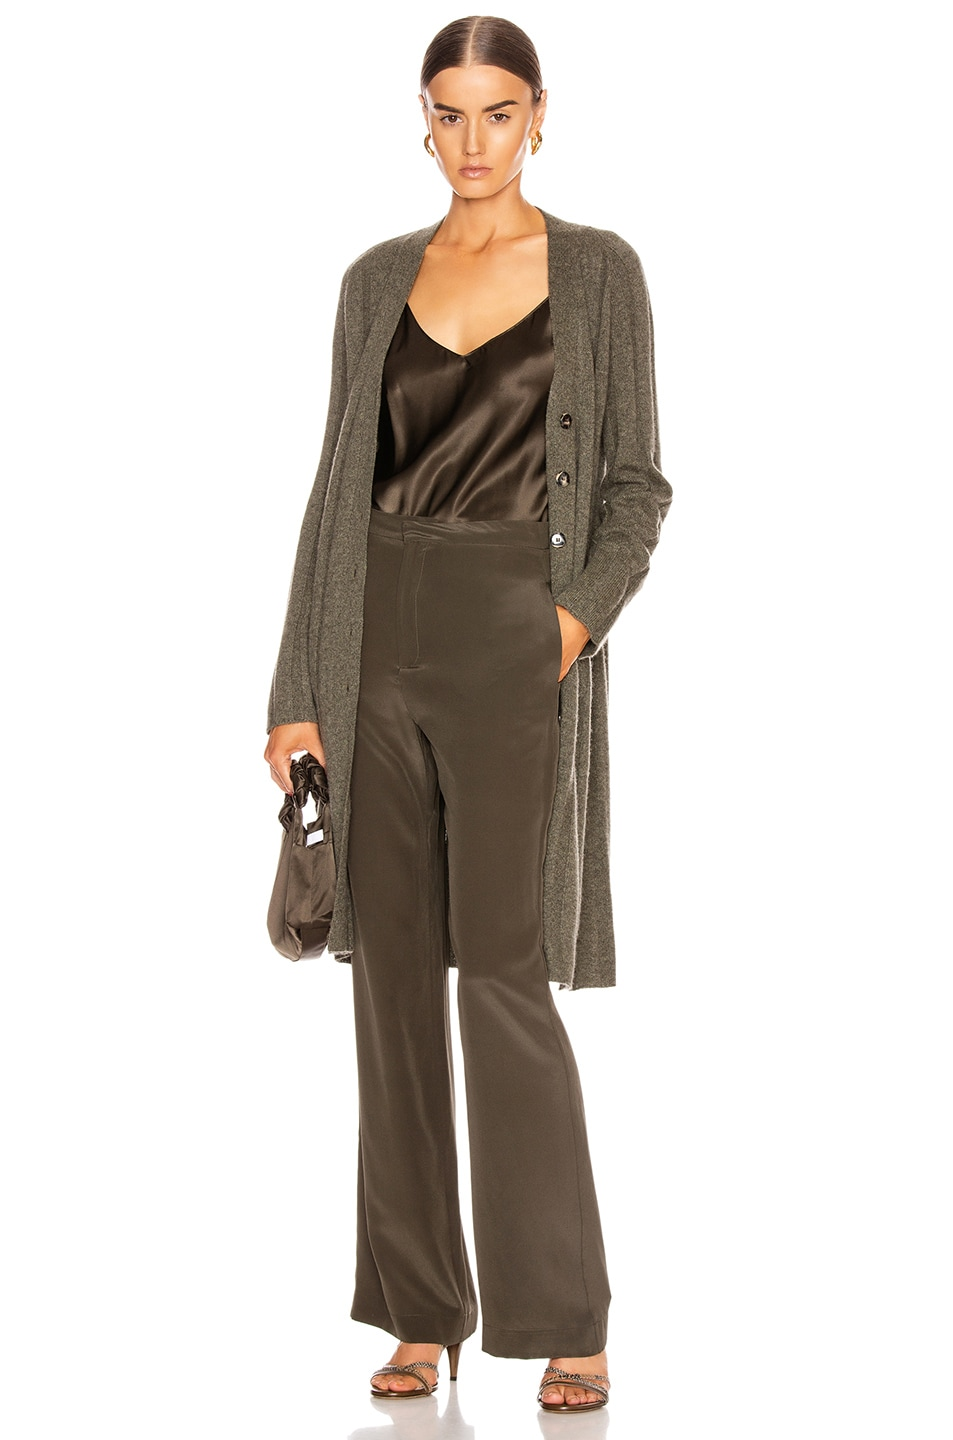 Image 1 of SABLYN Cory Cardigan in Olive